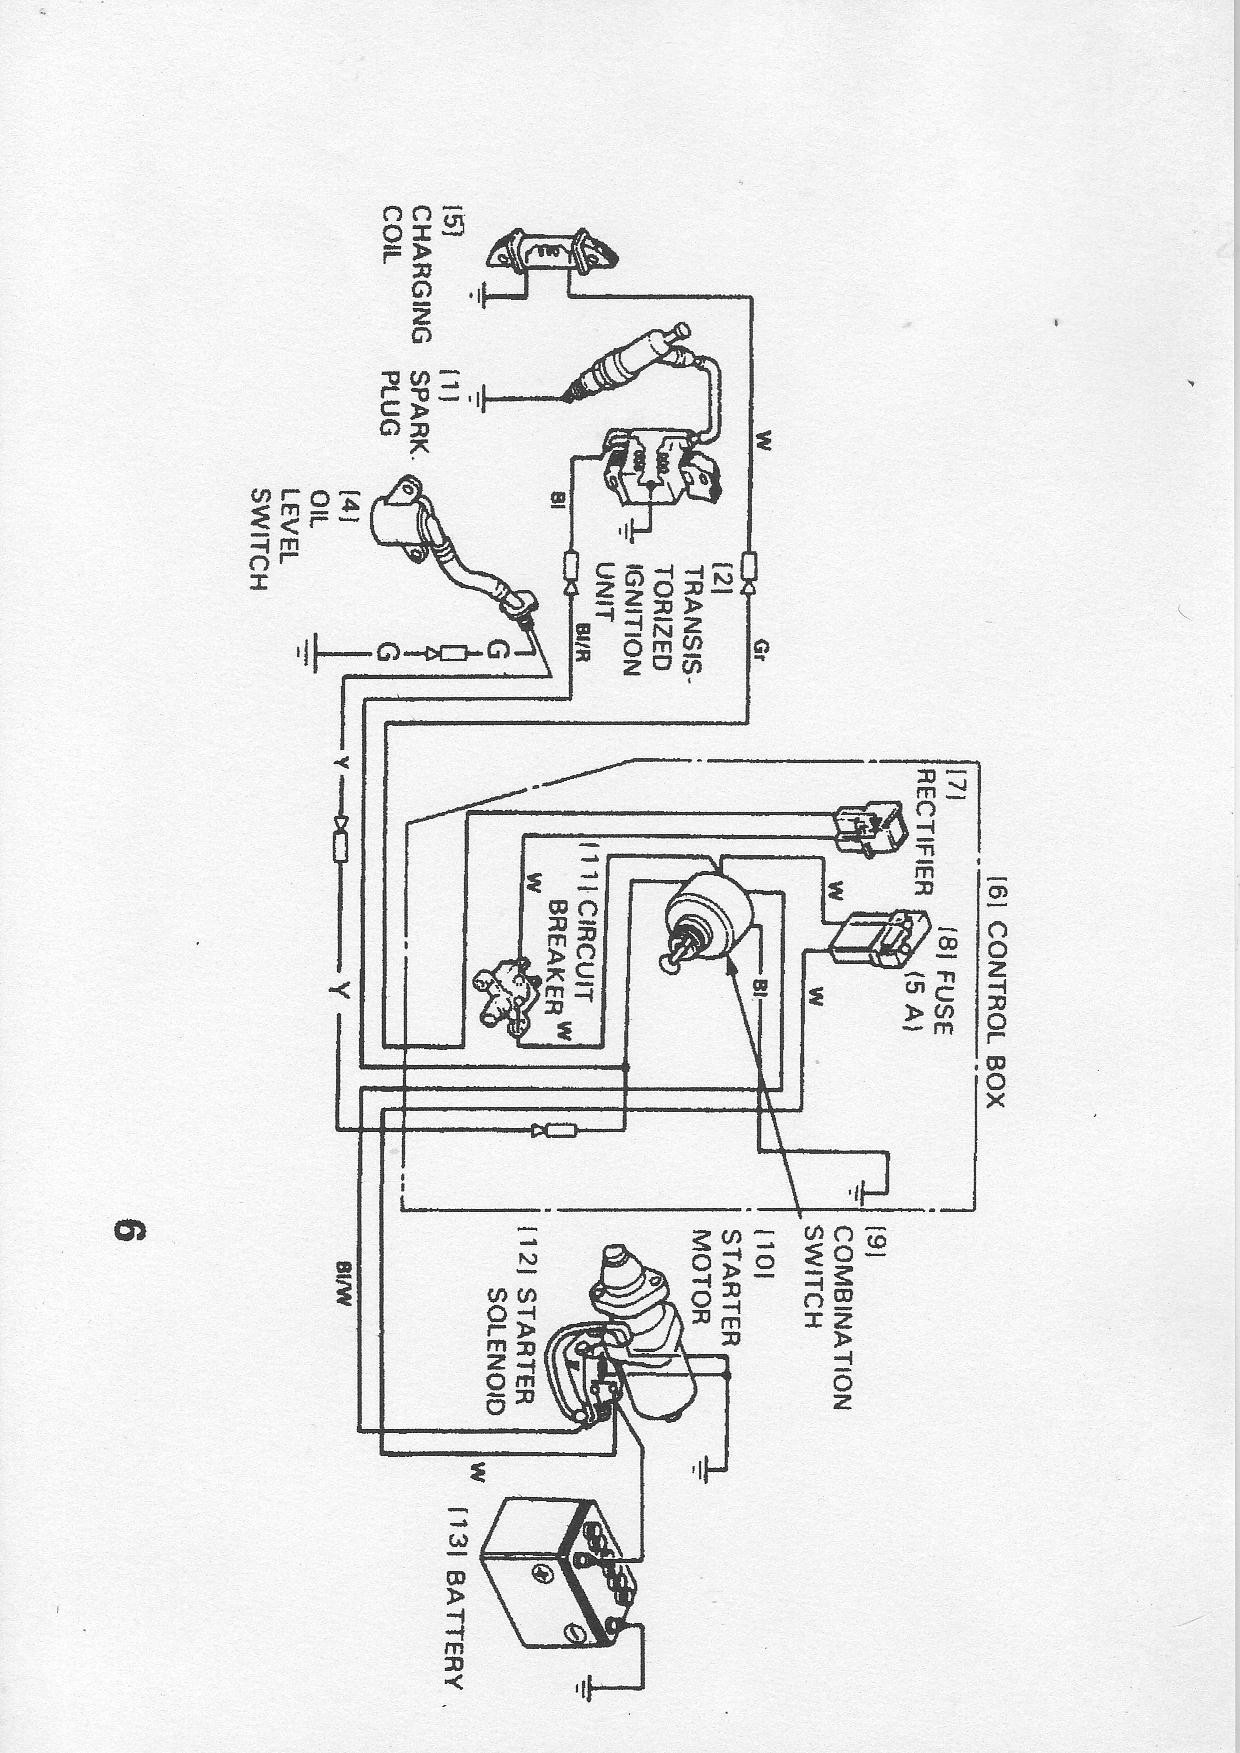 Honda Gx390 Parts Diagram Pressure Washers